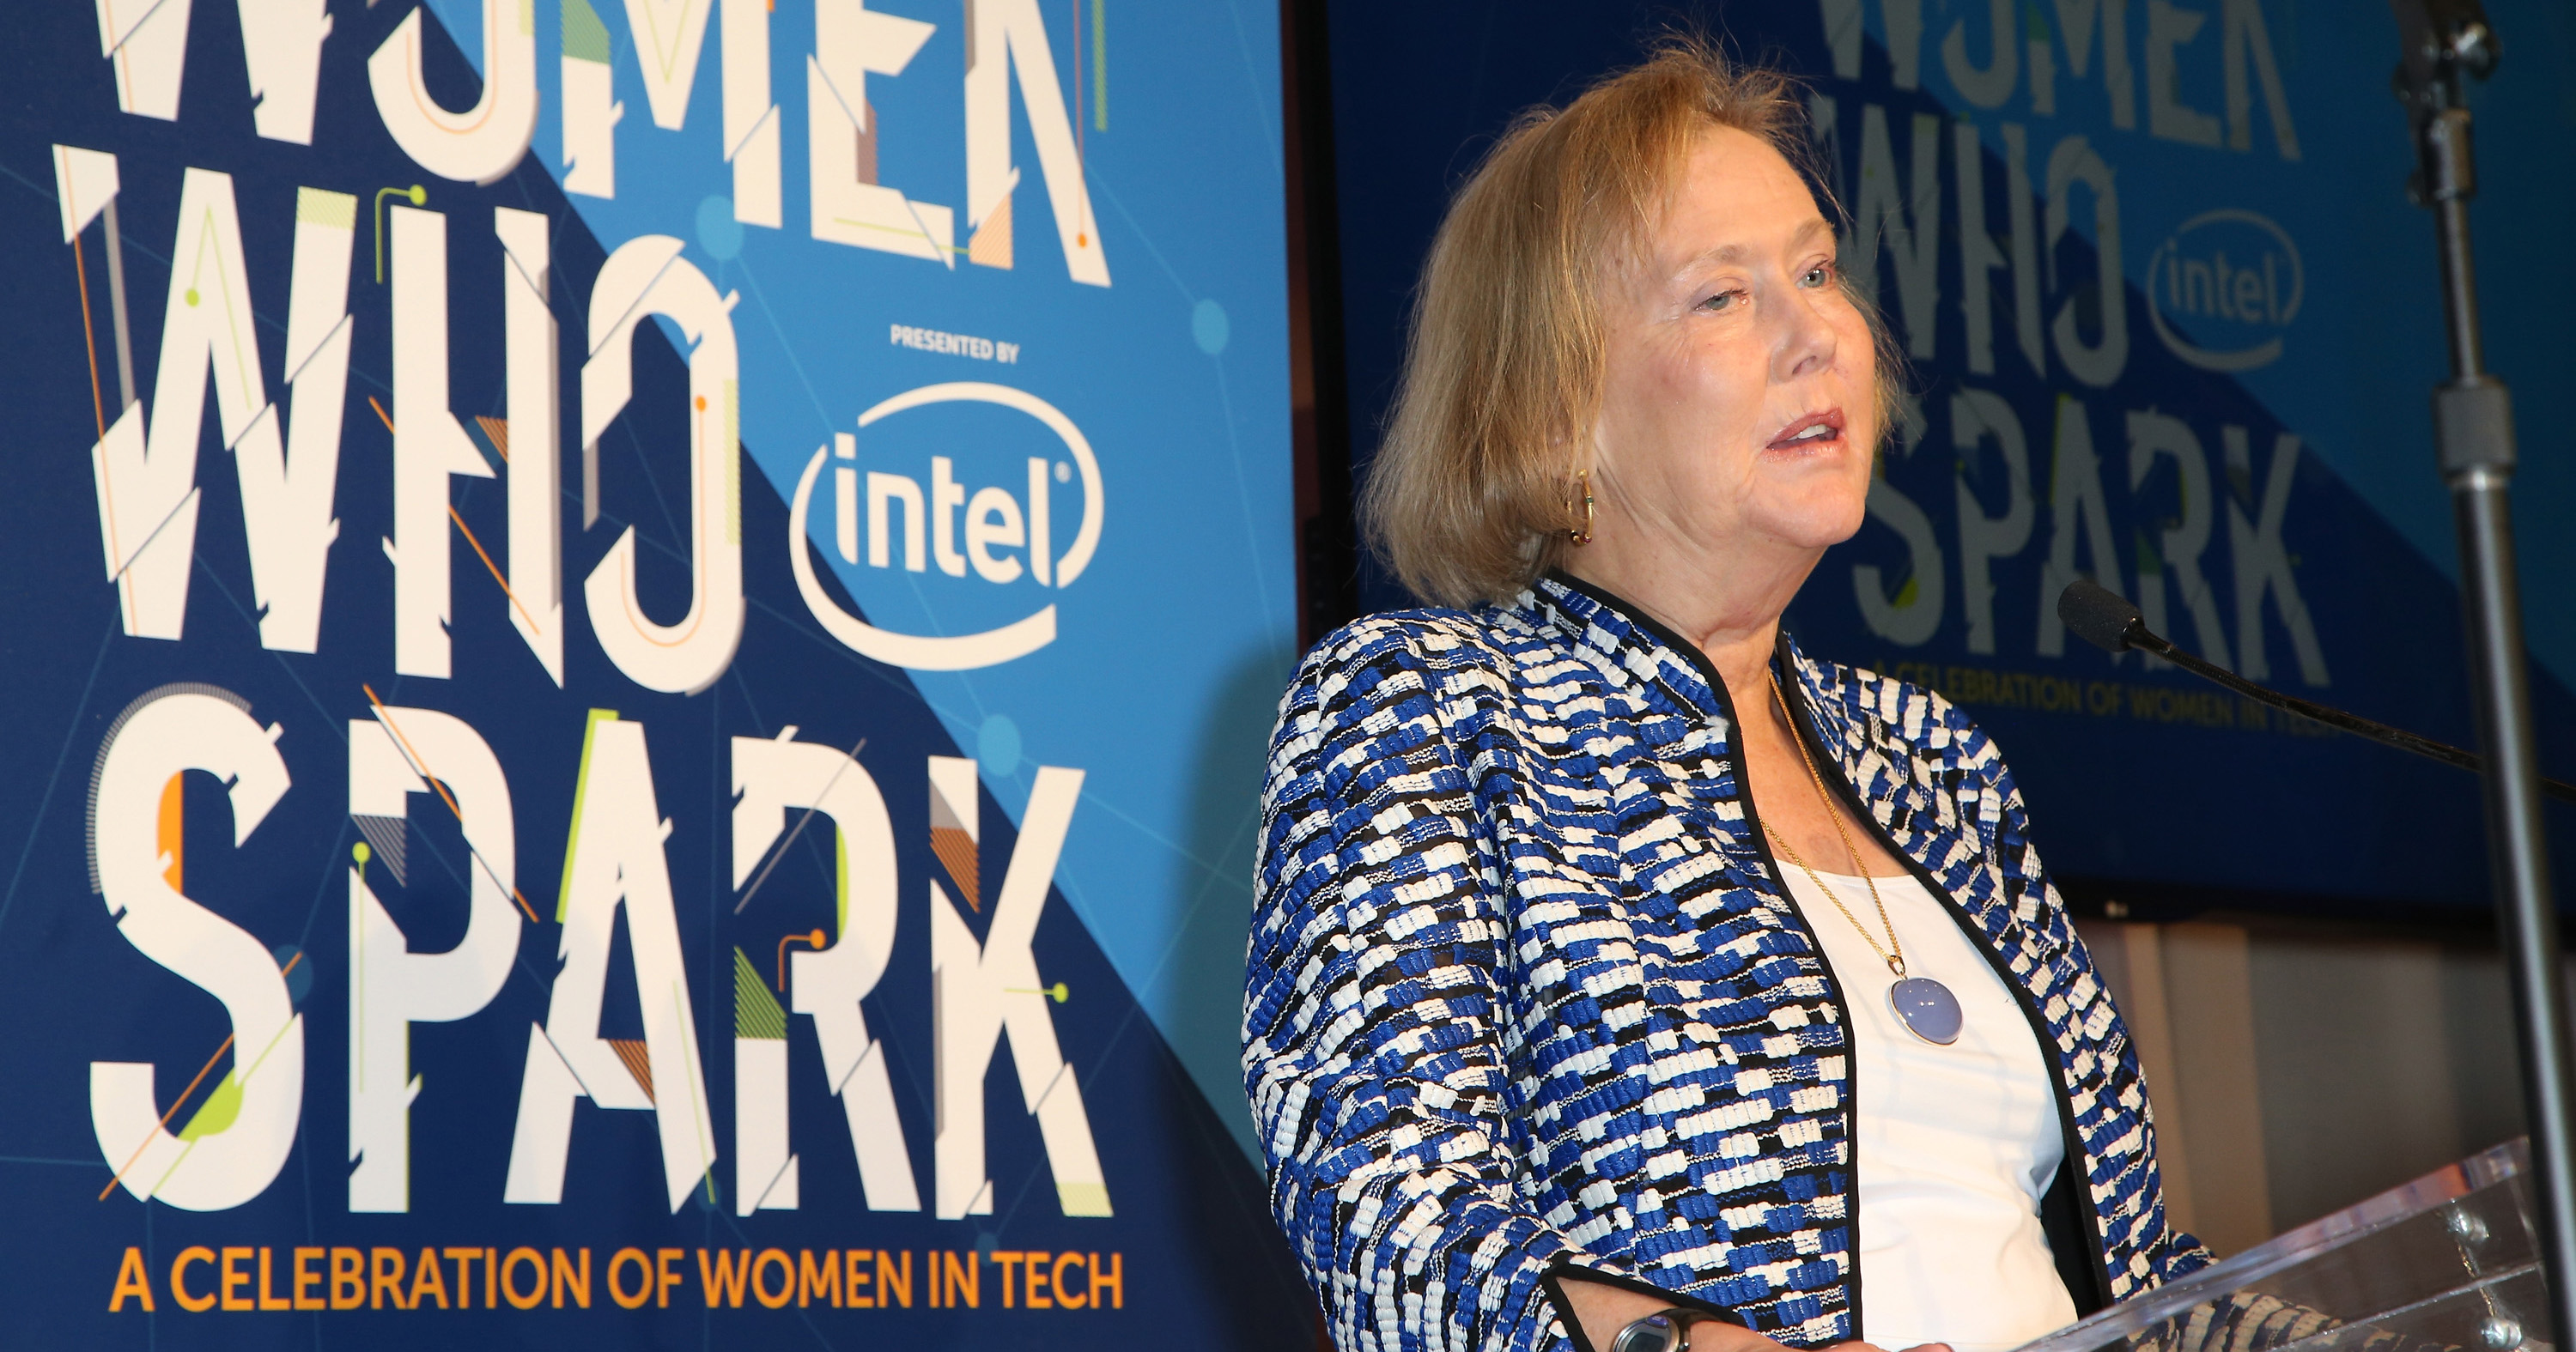 Honoree Dr. Telle Whitney speaks during the Women Who Spark Awards presented by Intel on Jan. 7, 2016 in Las Vegas.